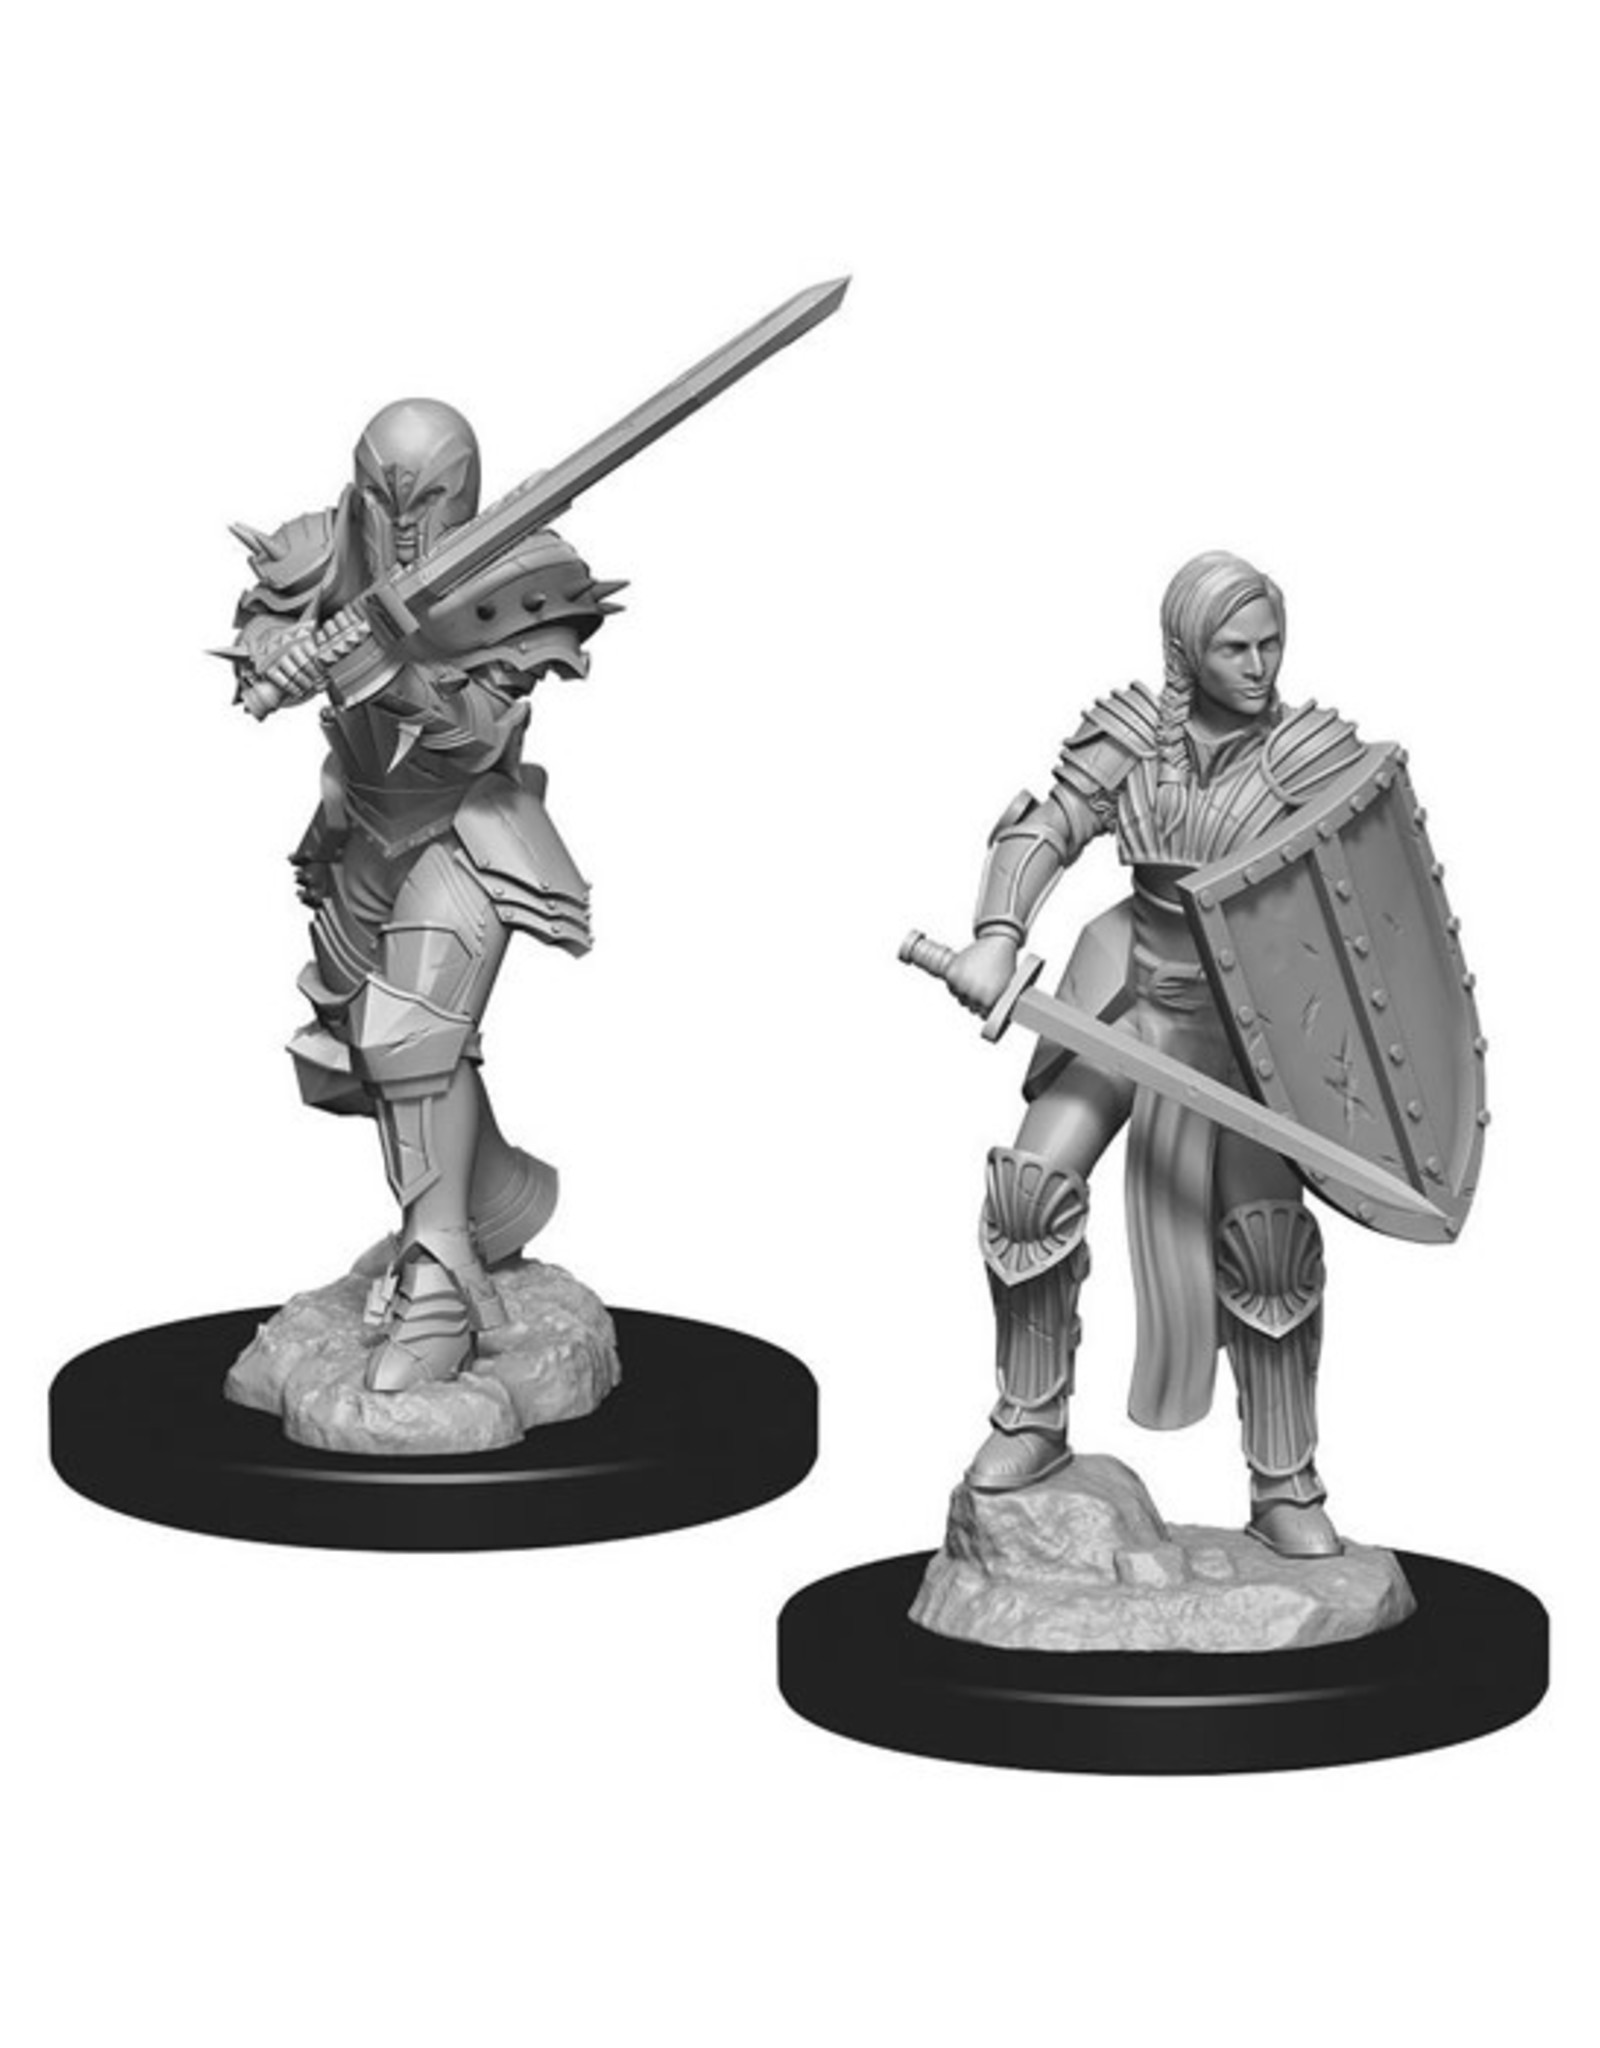 Dungeons & Dragons Dungeons & Dragons: Nolzur's - Human Female Fighter